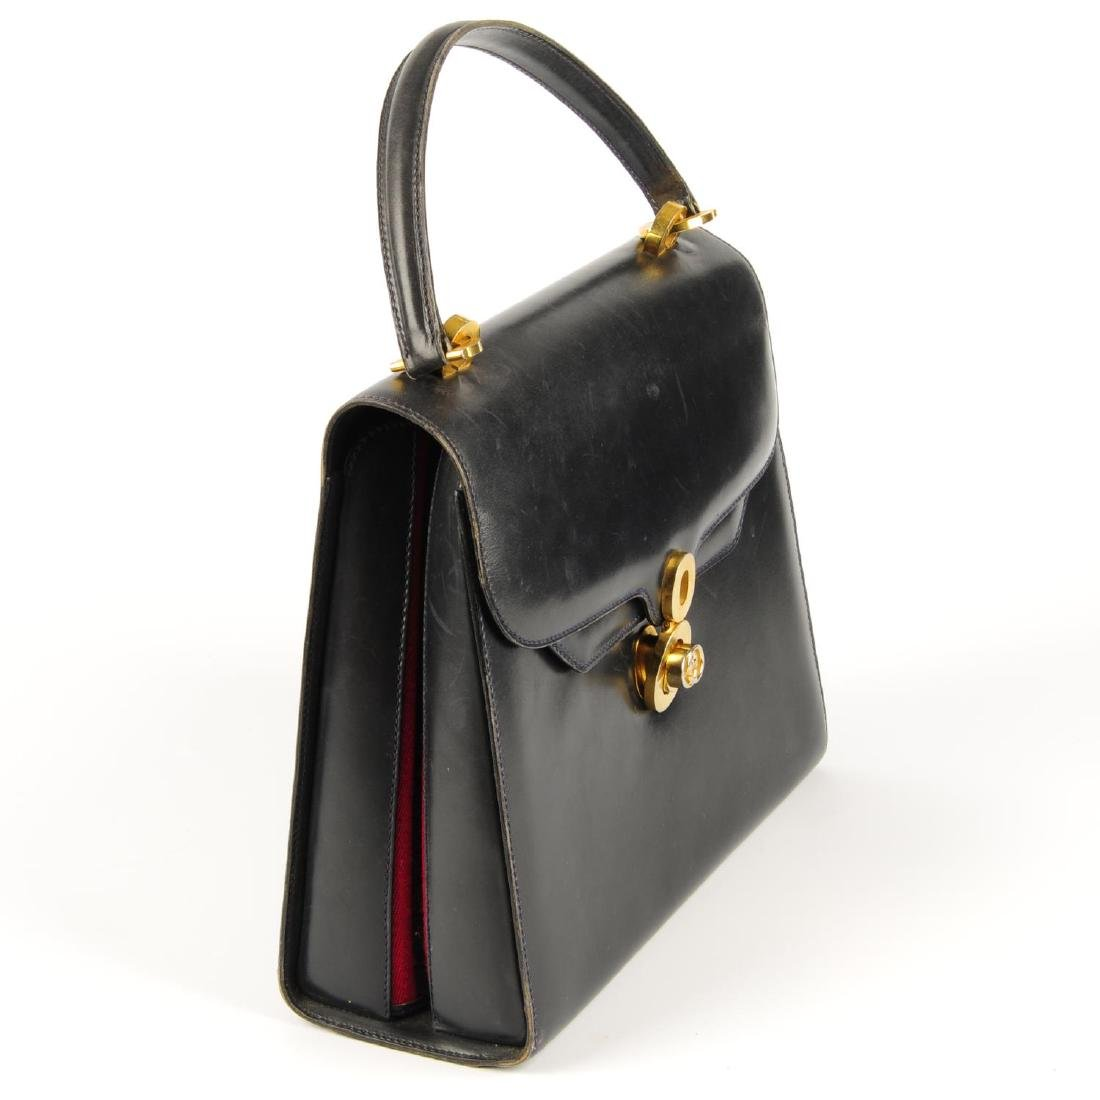 GUCCI - a vintage leather box handbag. Designed with a - 3